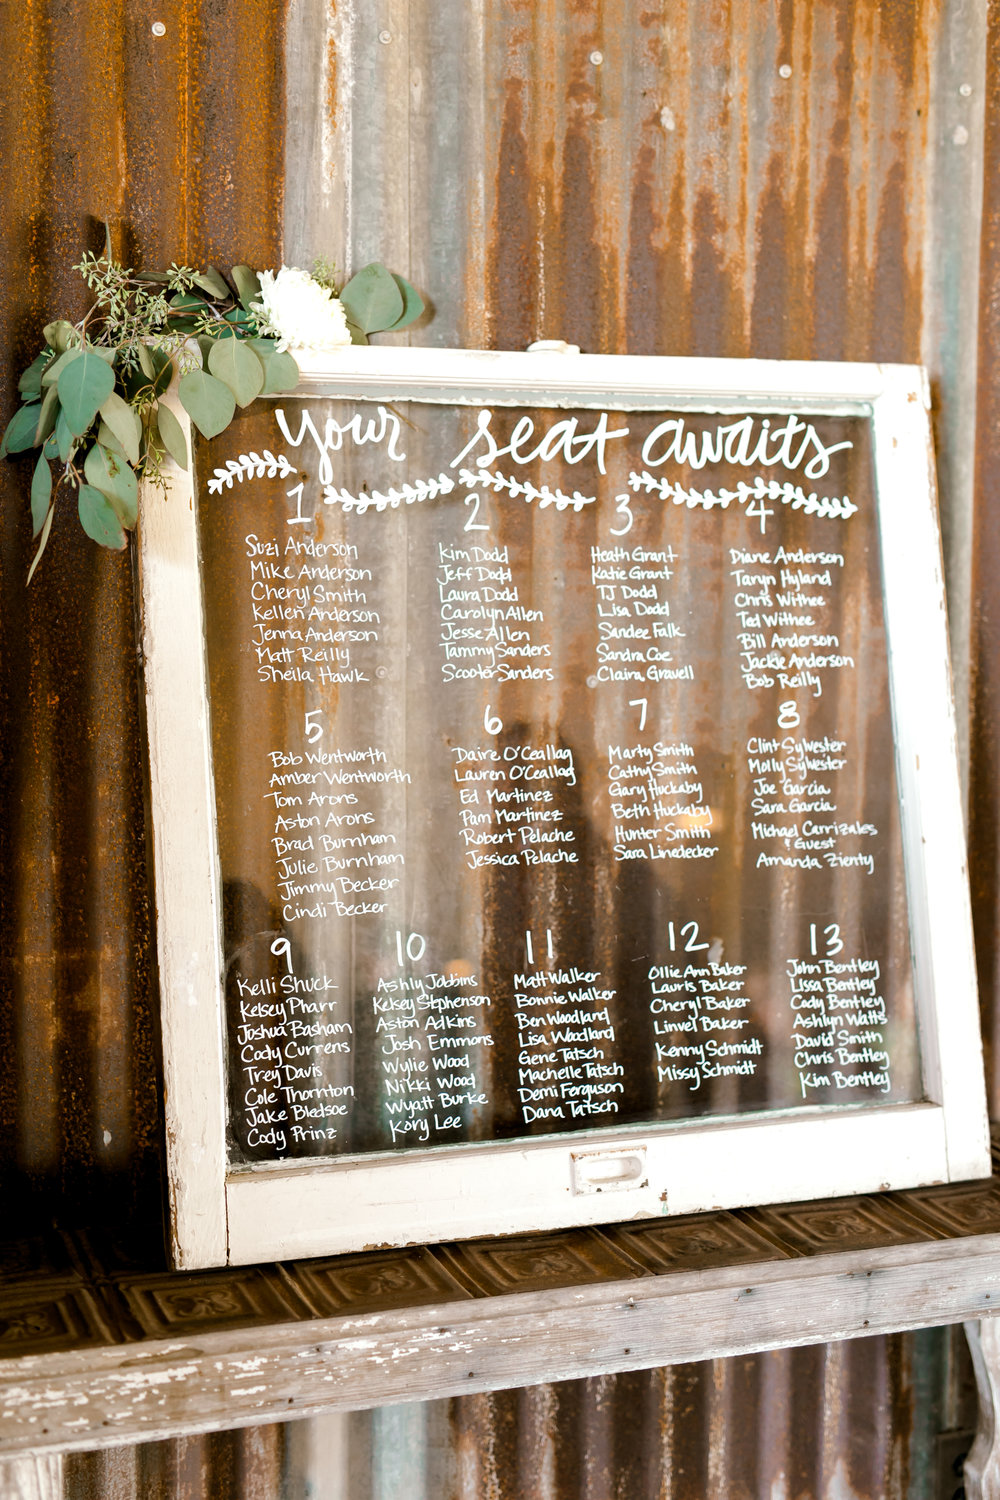 Petal Pushers is a premier wedding & special event florist located just outside of Austin in Dripping Springs, Texas. Hill Country wedding venue, The Creek Haus, seat assignment wedding inspiration.